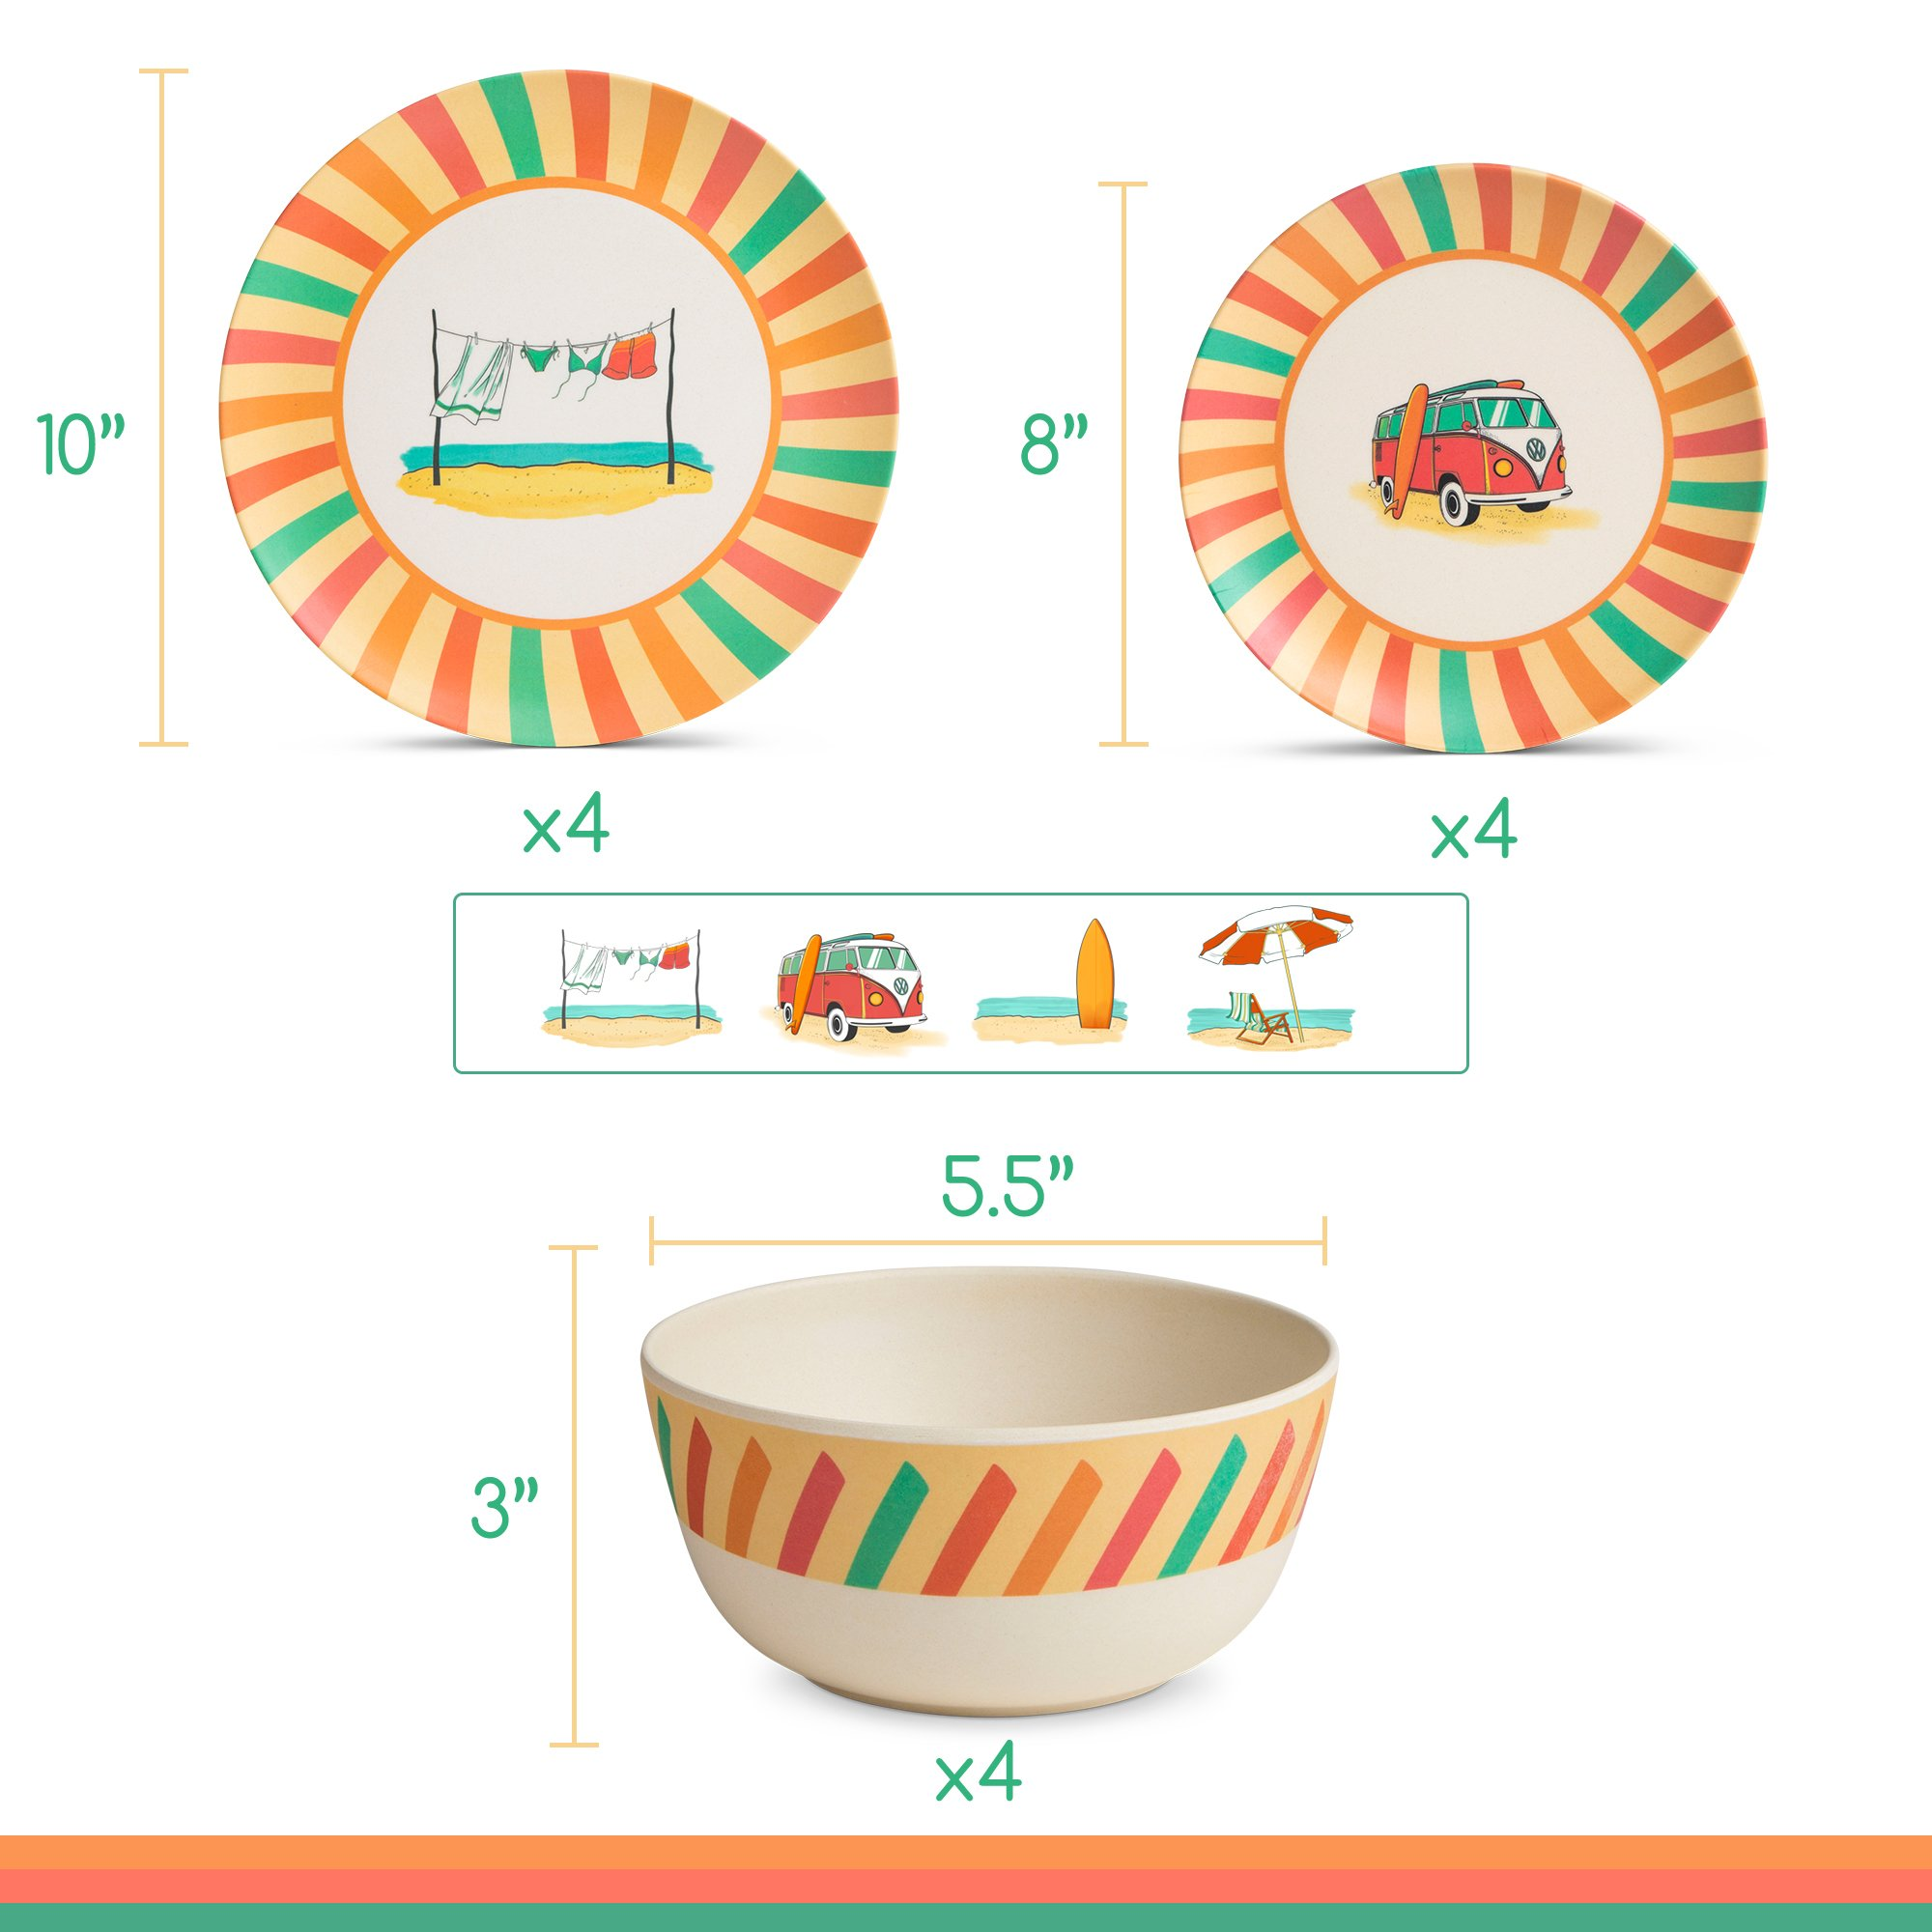 Bamboo Dinnerware Set - Camping, Kids and Family Reusable Dishes - 4 Small Plates, 4 Bowls, 4 Large Plates - Durable, Lightweight, Eco-Friendly, Non-Toxic - Casual, Retro Dishware, 12 Piece Sets by Roam (Image #6)